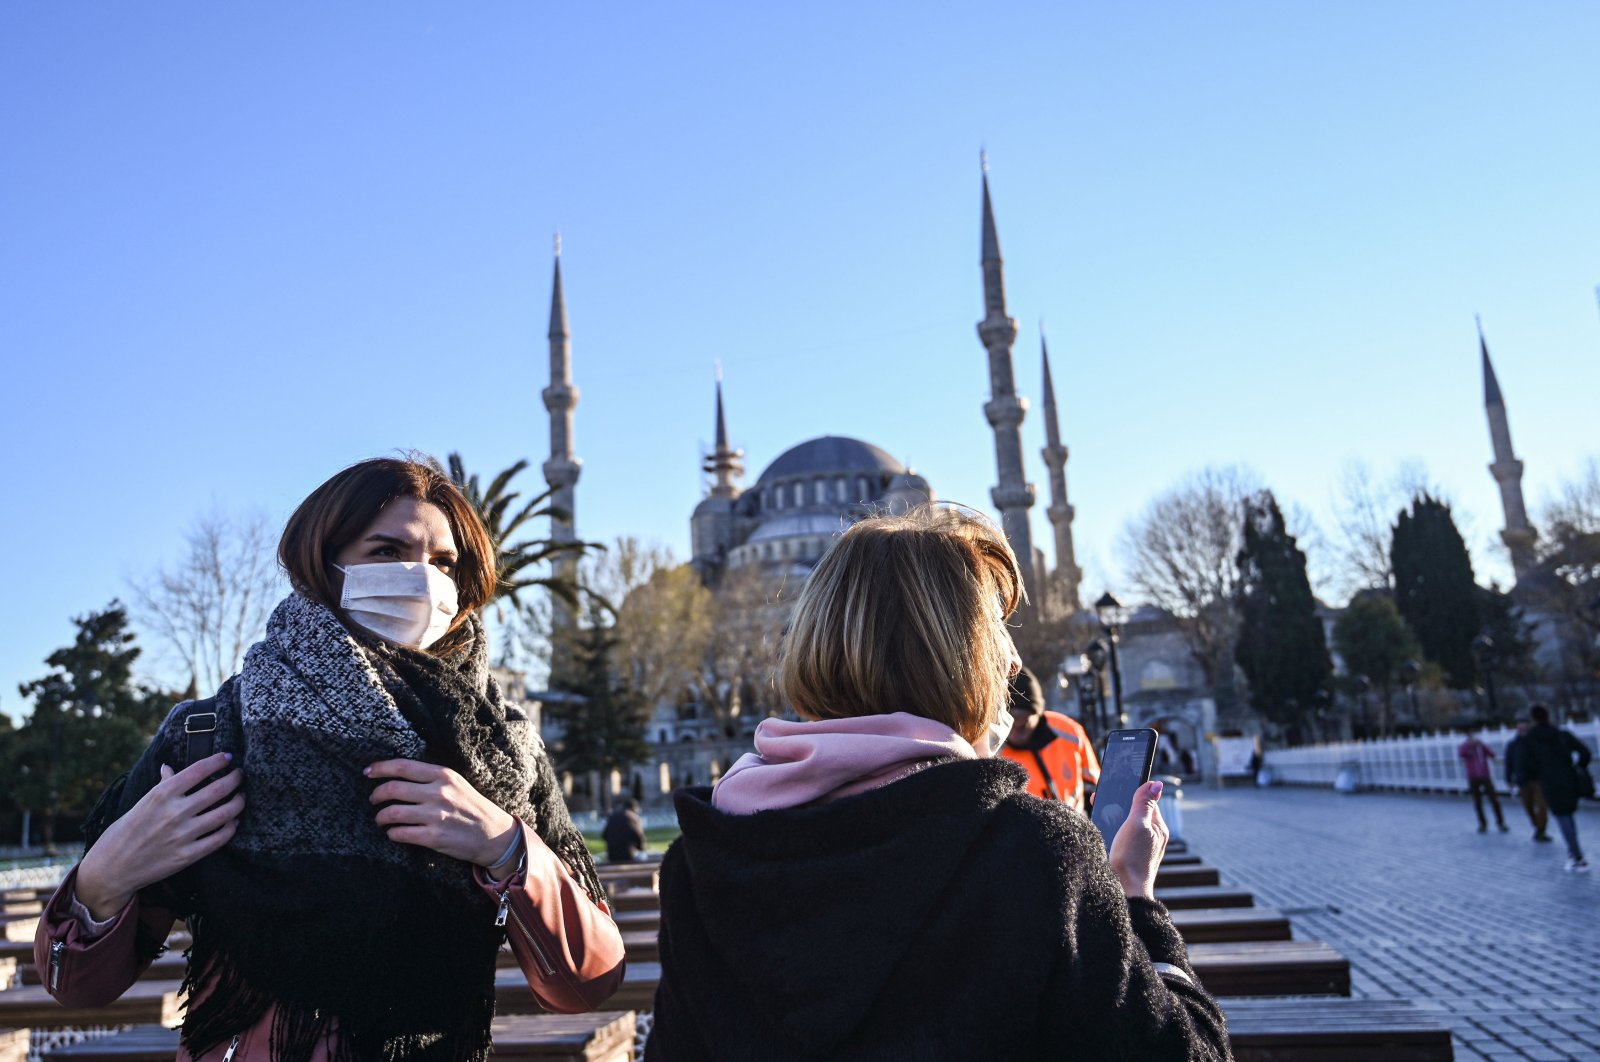 Women wear protective face masks near Sultanahmet Mosque, also known as the Blue Mosque, as the nation tries to contain the coronavirus outbreak, Istanbul, March 17, 2020 (AFP Photo)